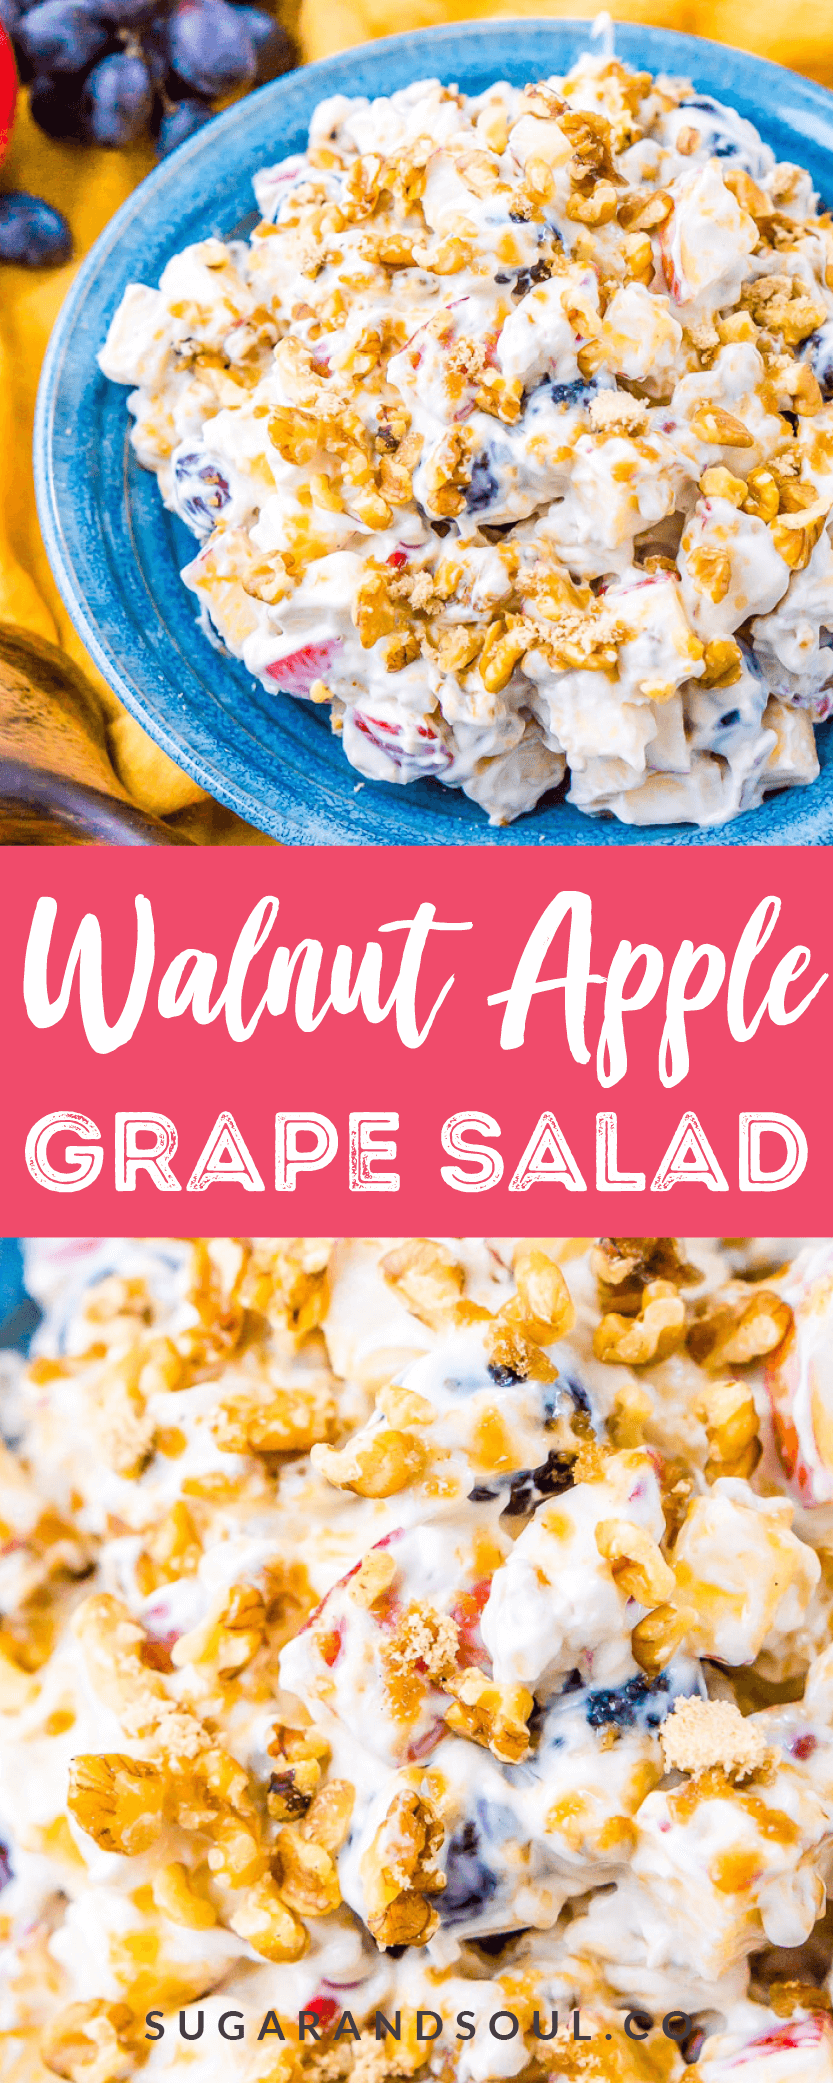 This Apple Grape Salad is a vintage dessert salad made with cream cheese, yogurt, apples, grapes, walnuts, and sugar! It's a potluck favorite and everyone will want the recipe!